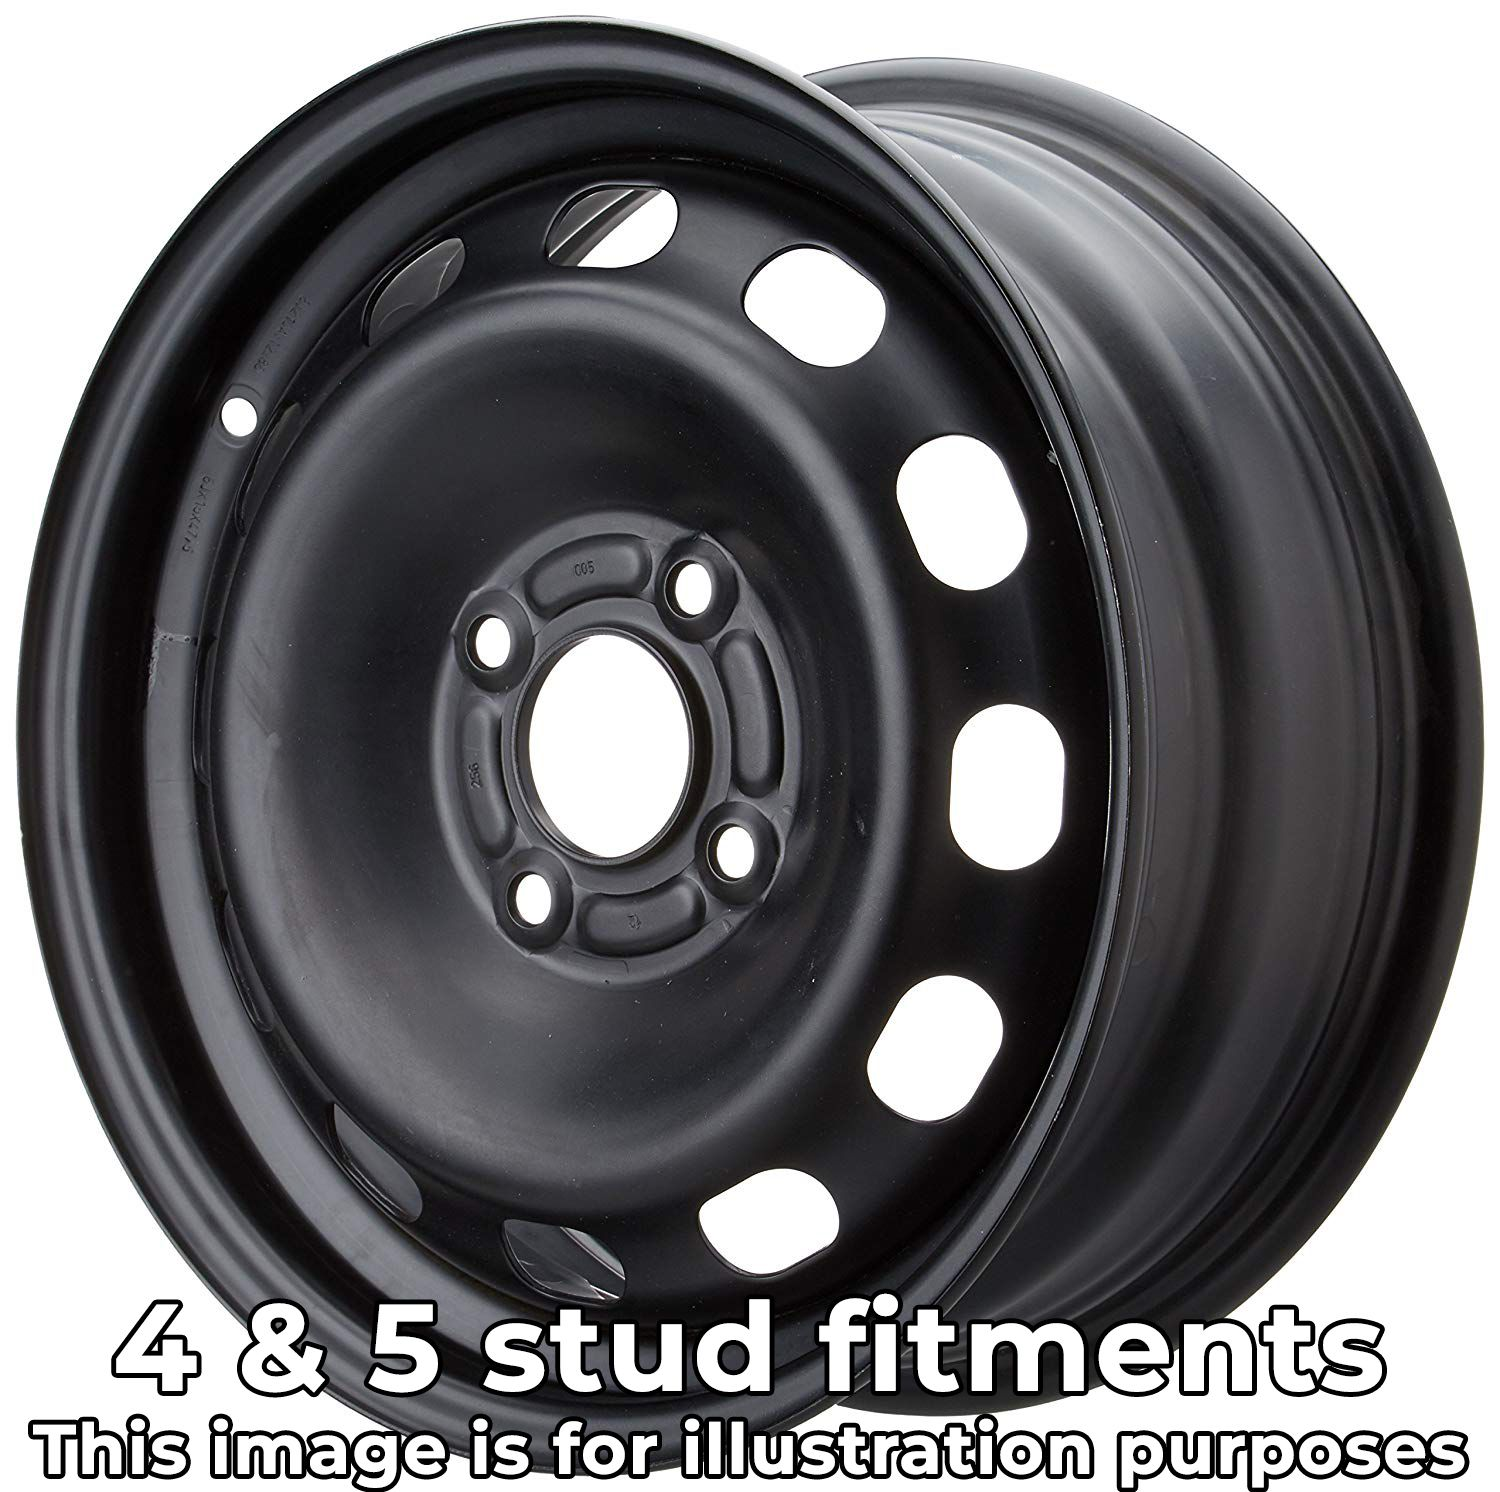 17″ Steel Wheel – 4 and 5 Stud Fitments – For all makes & models